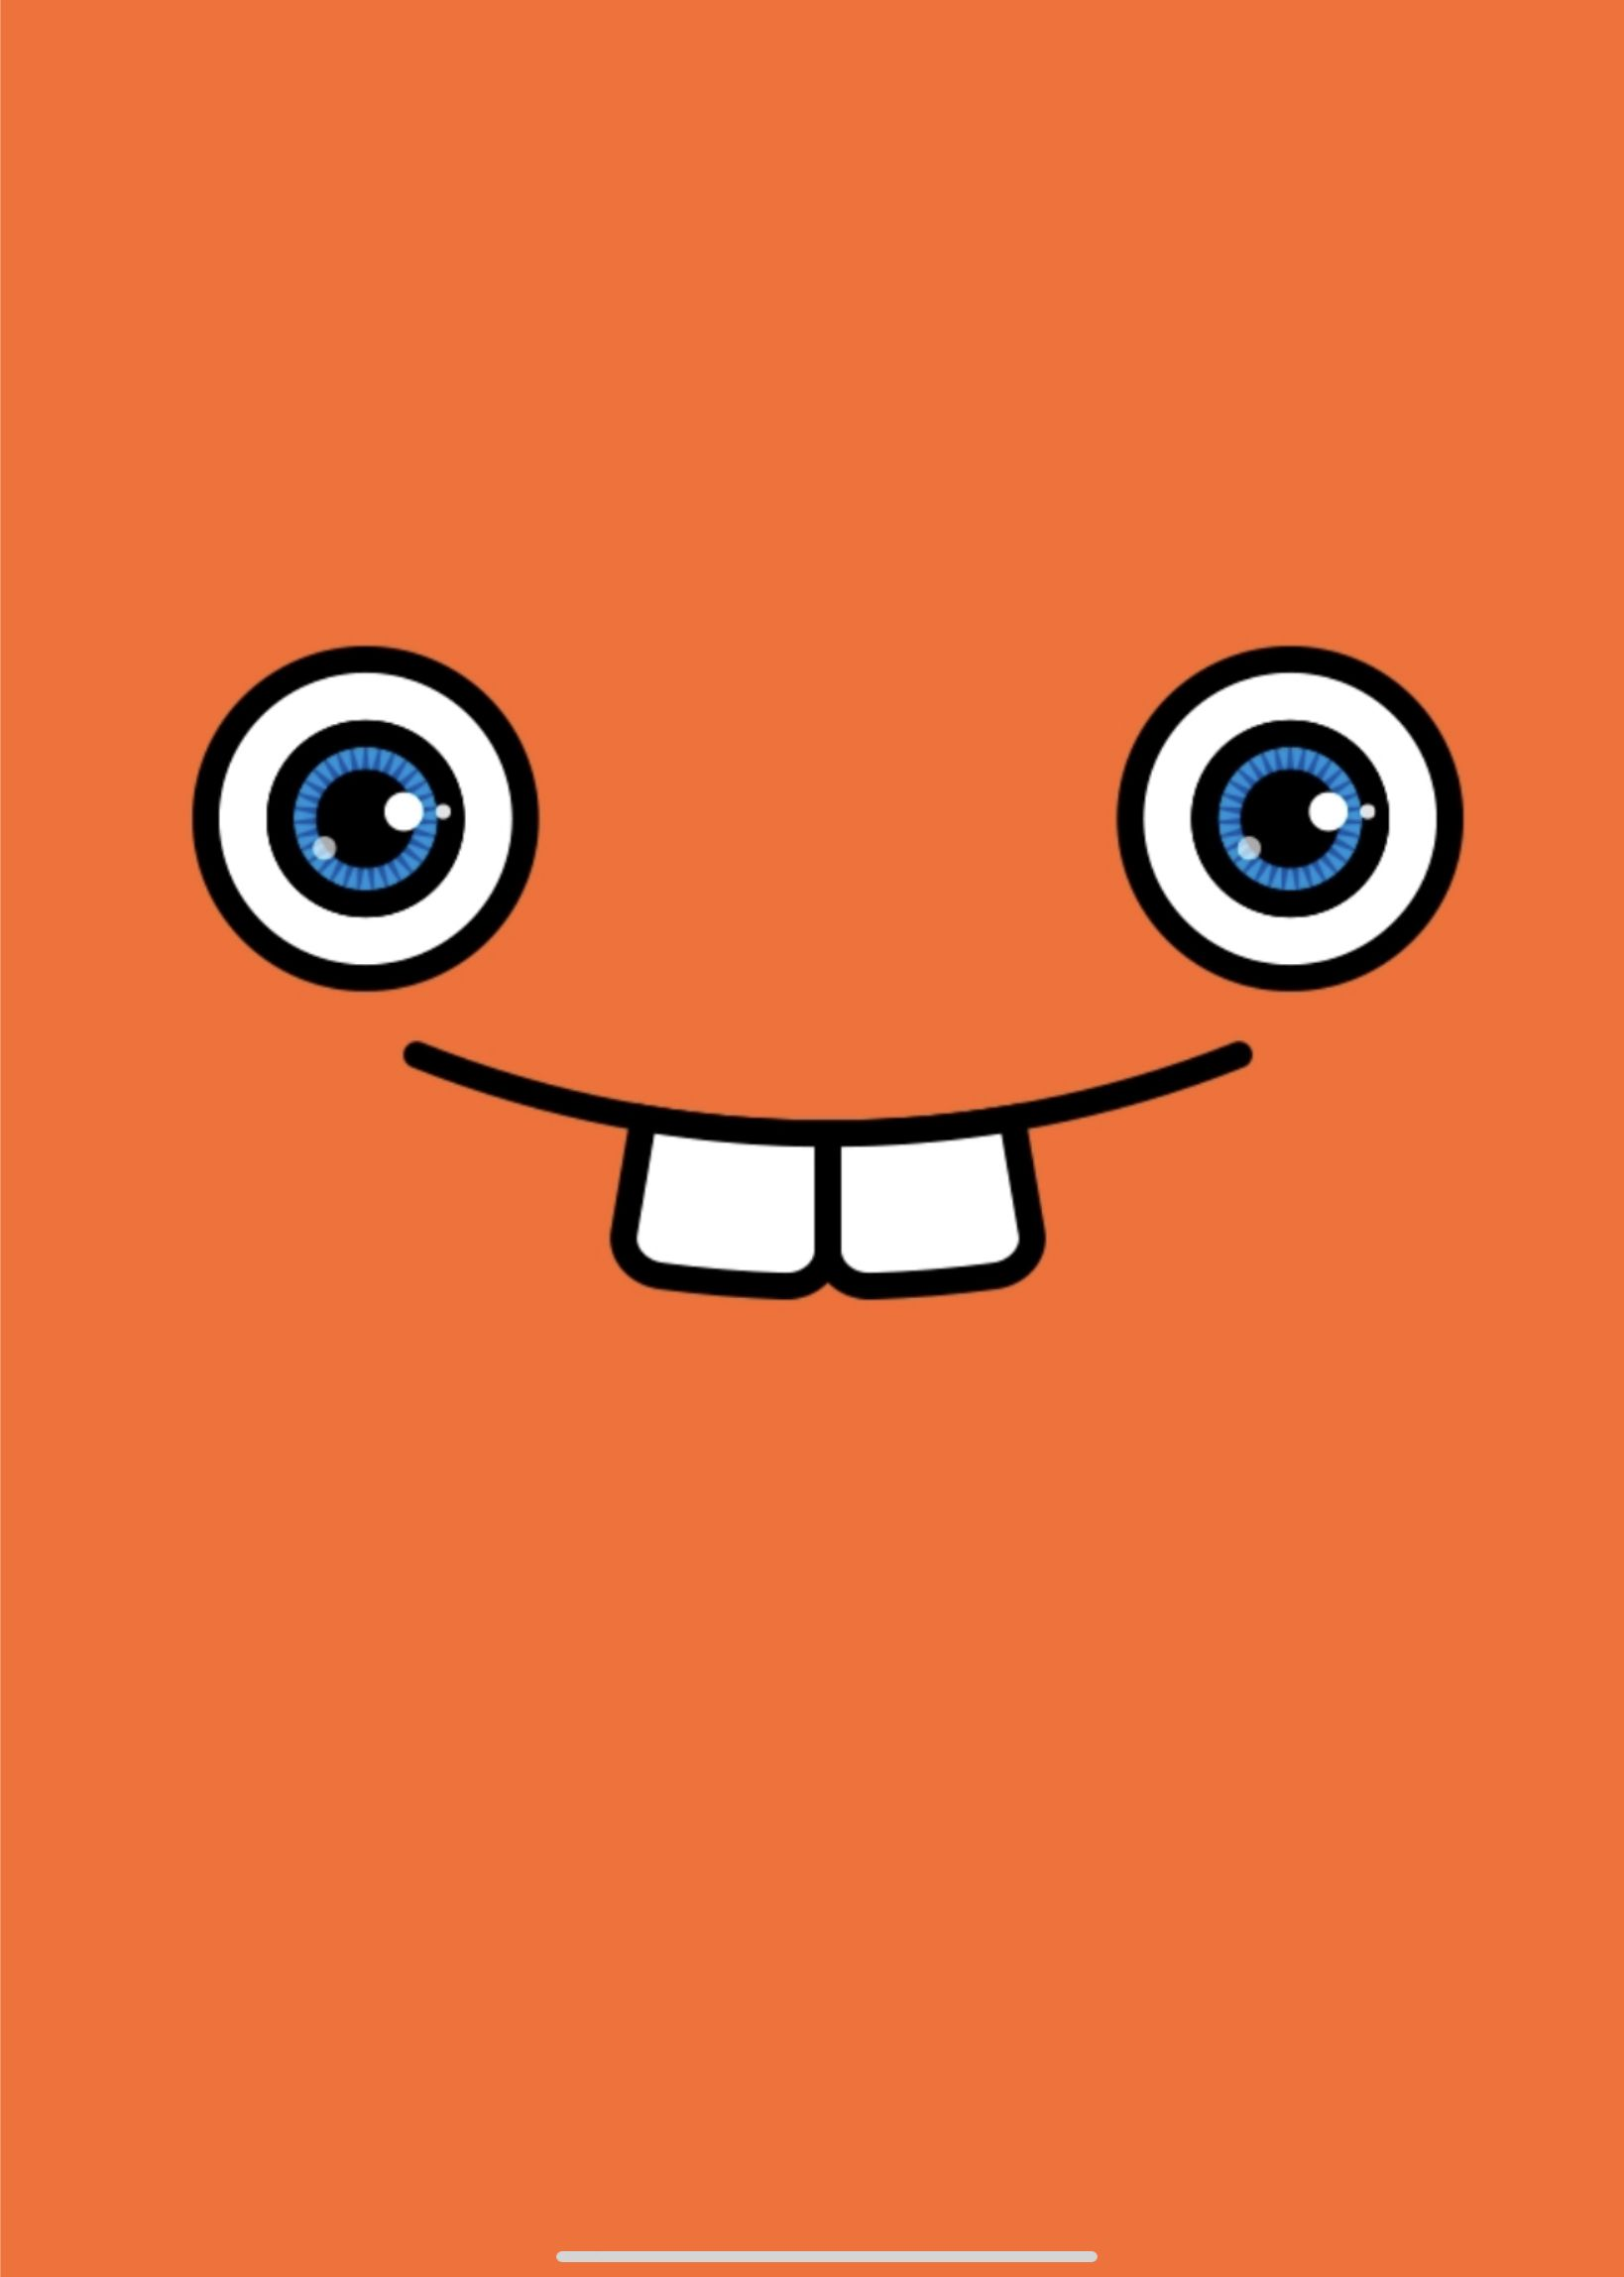 Pin By Nicholas Fagans On Funny Face Wallpapers Cartoon Wallpaper Emoji Backgrounds Cute Wallpaper For Phone Cute and cool cartoon wallpapers